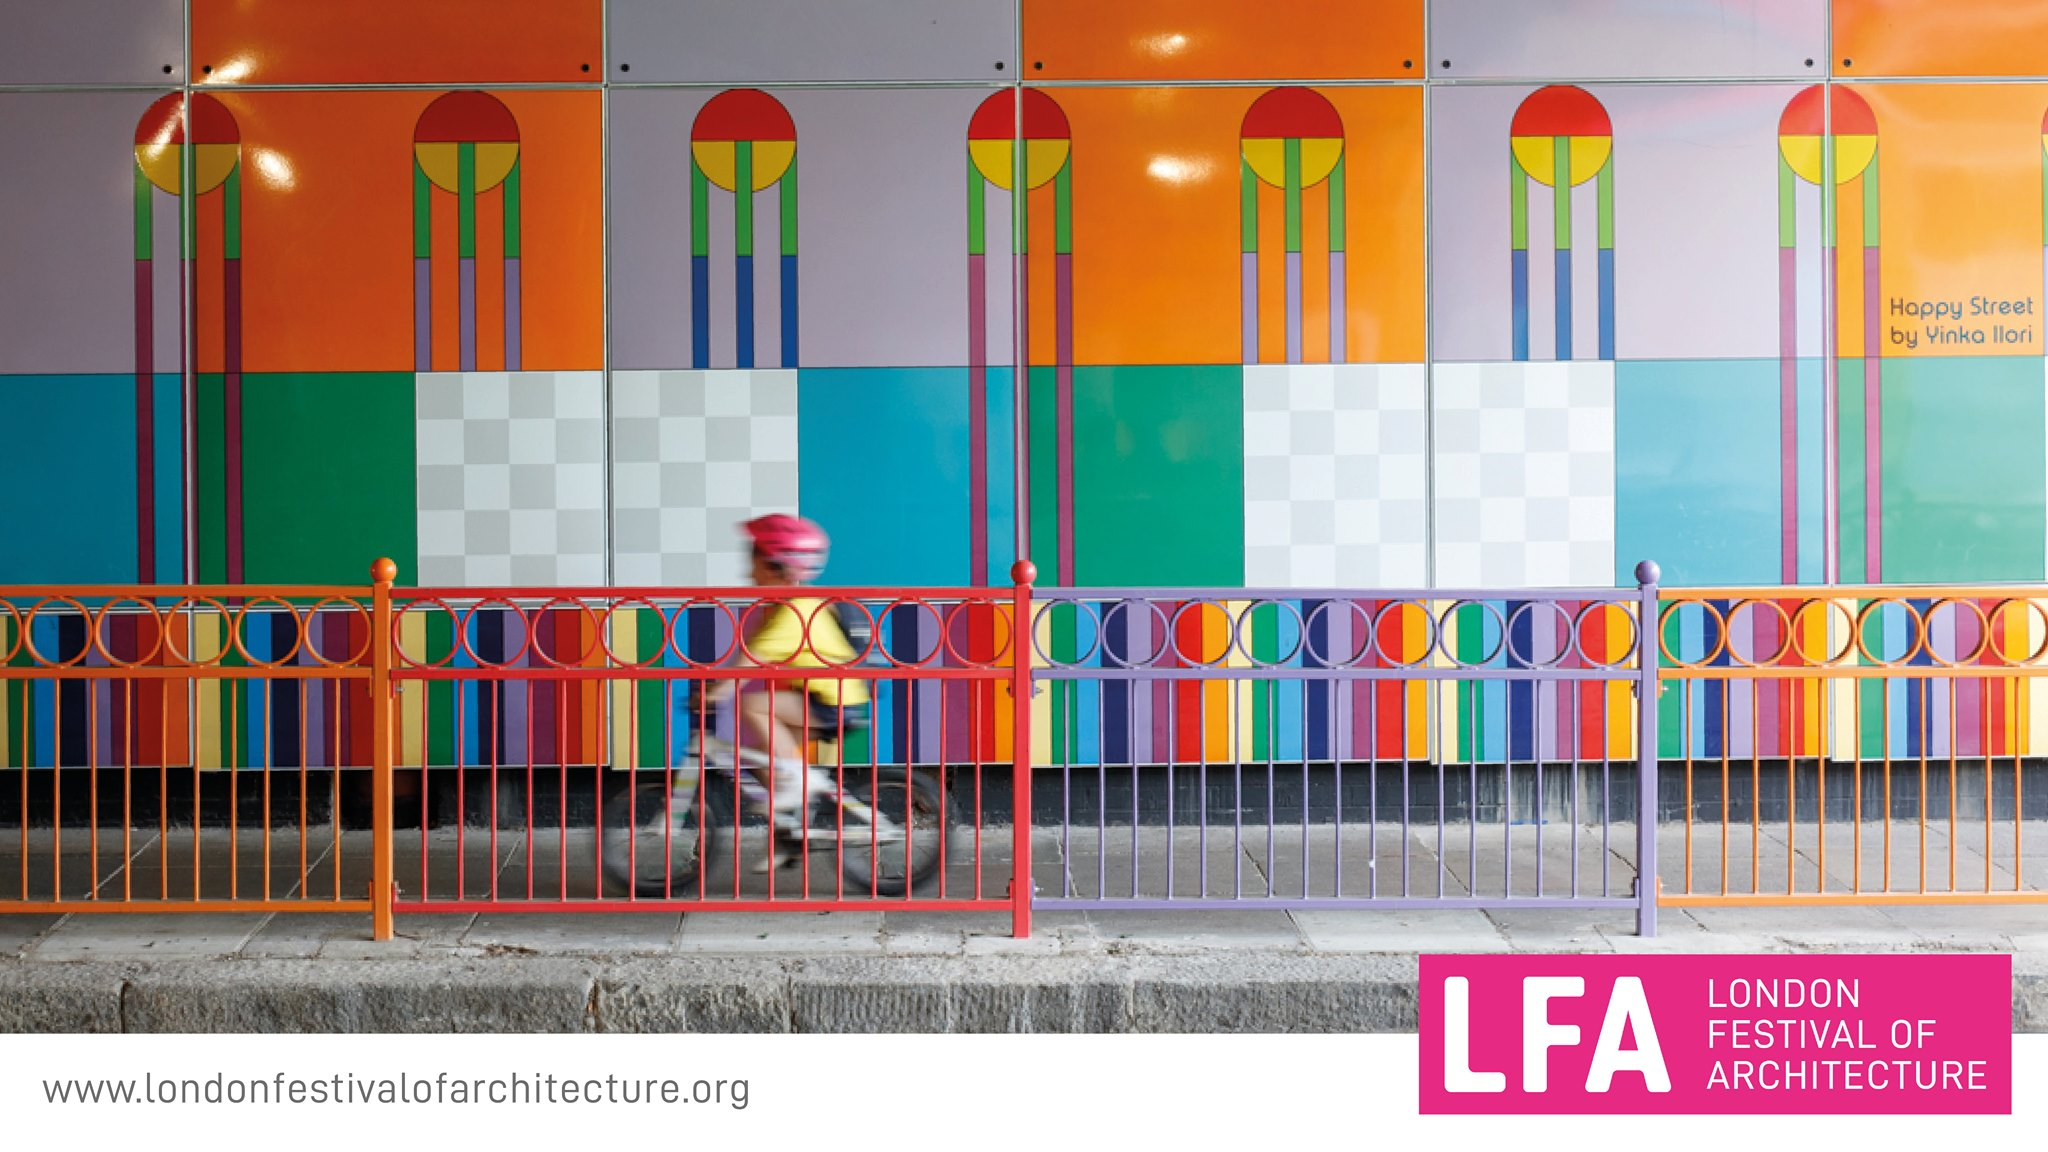 London Festival of Architecture, the poster: a colorful wall, a boardwalk with a baby boy on a bicycle, a colorful protective railing